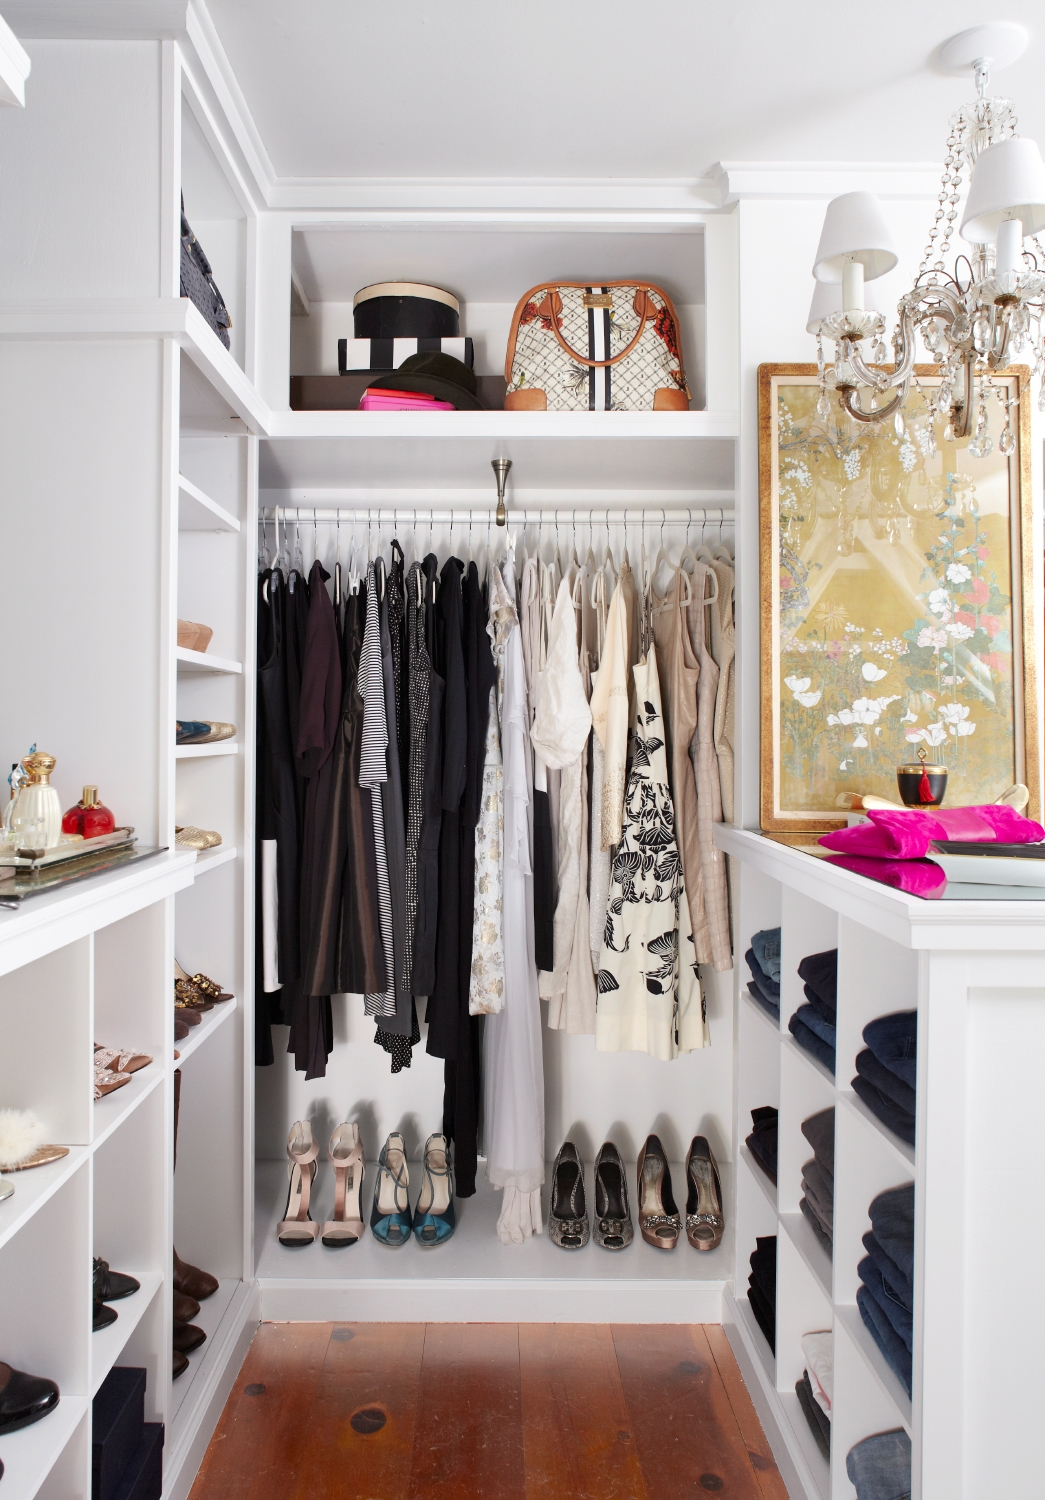 walk-in-closet-decorating-ideas-photo-8